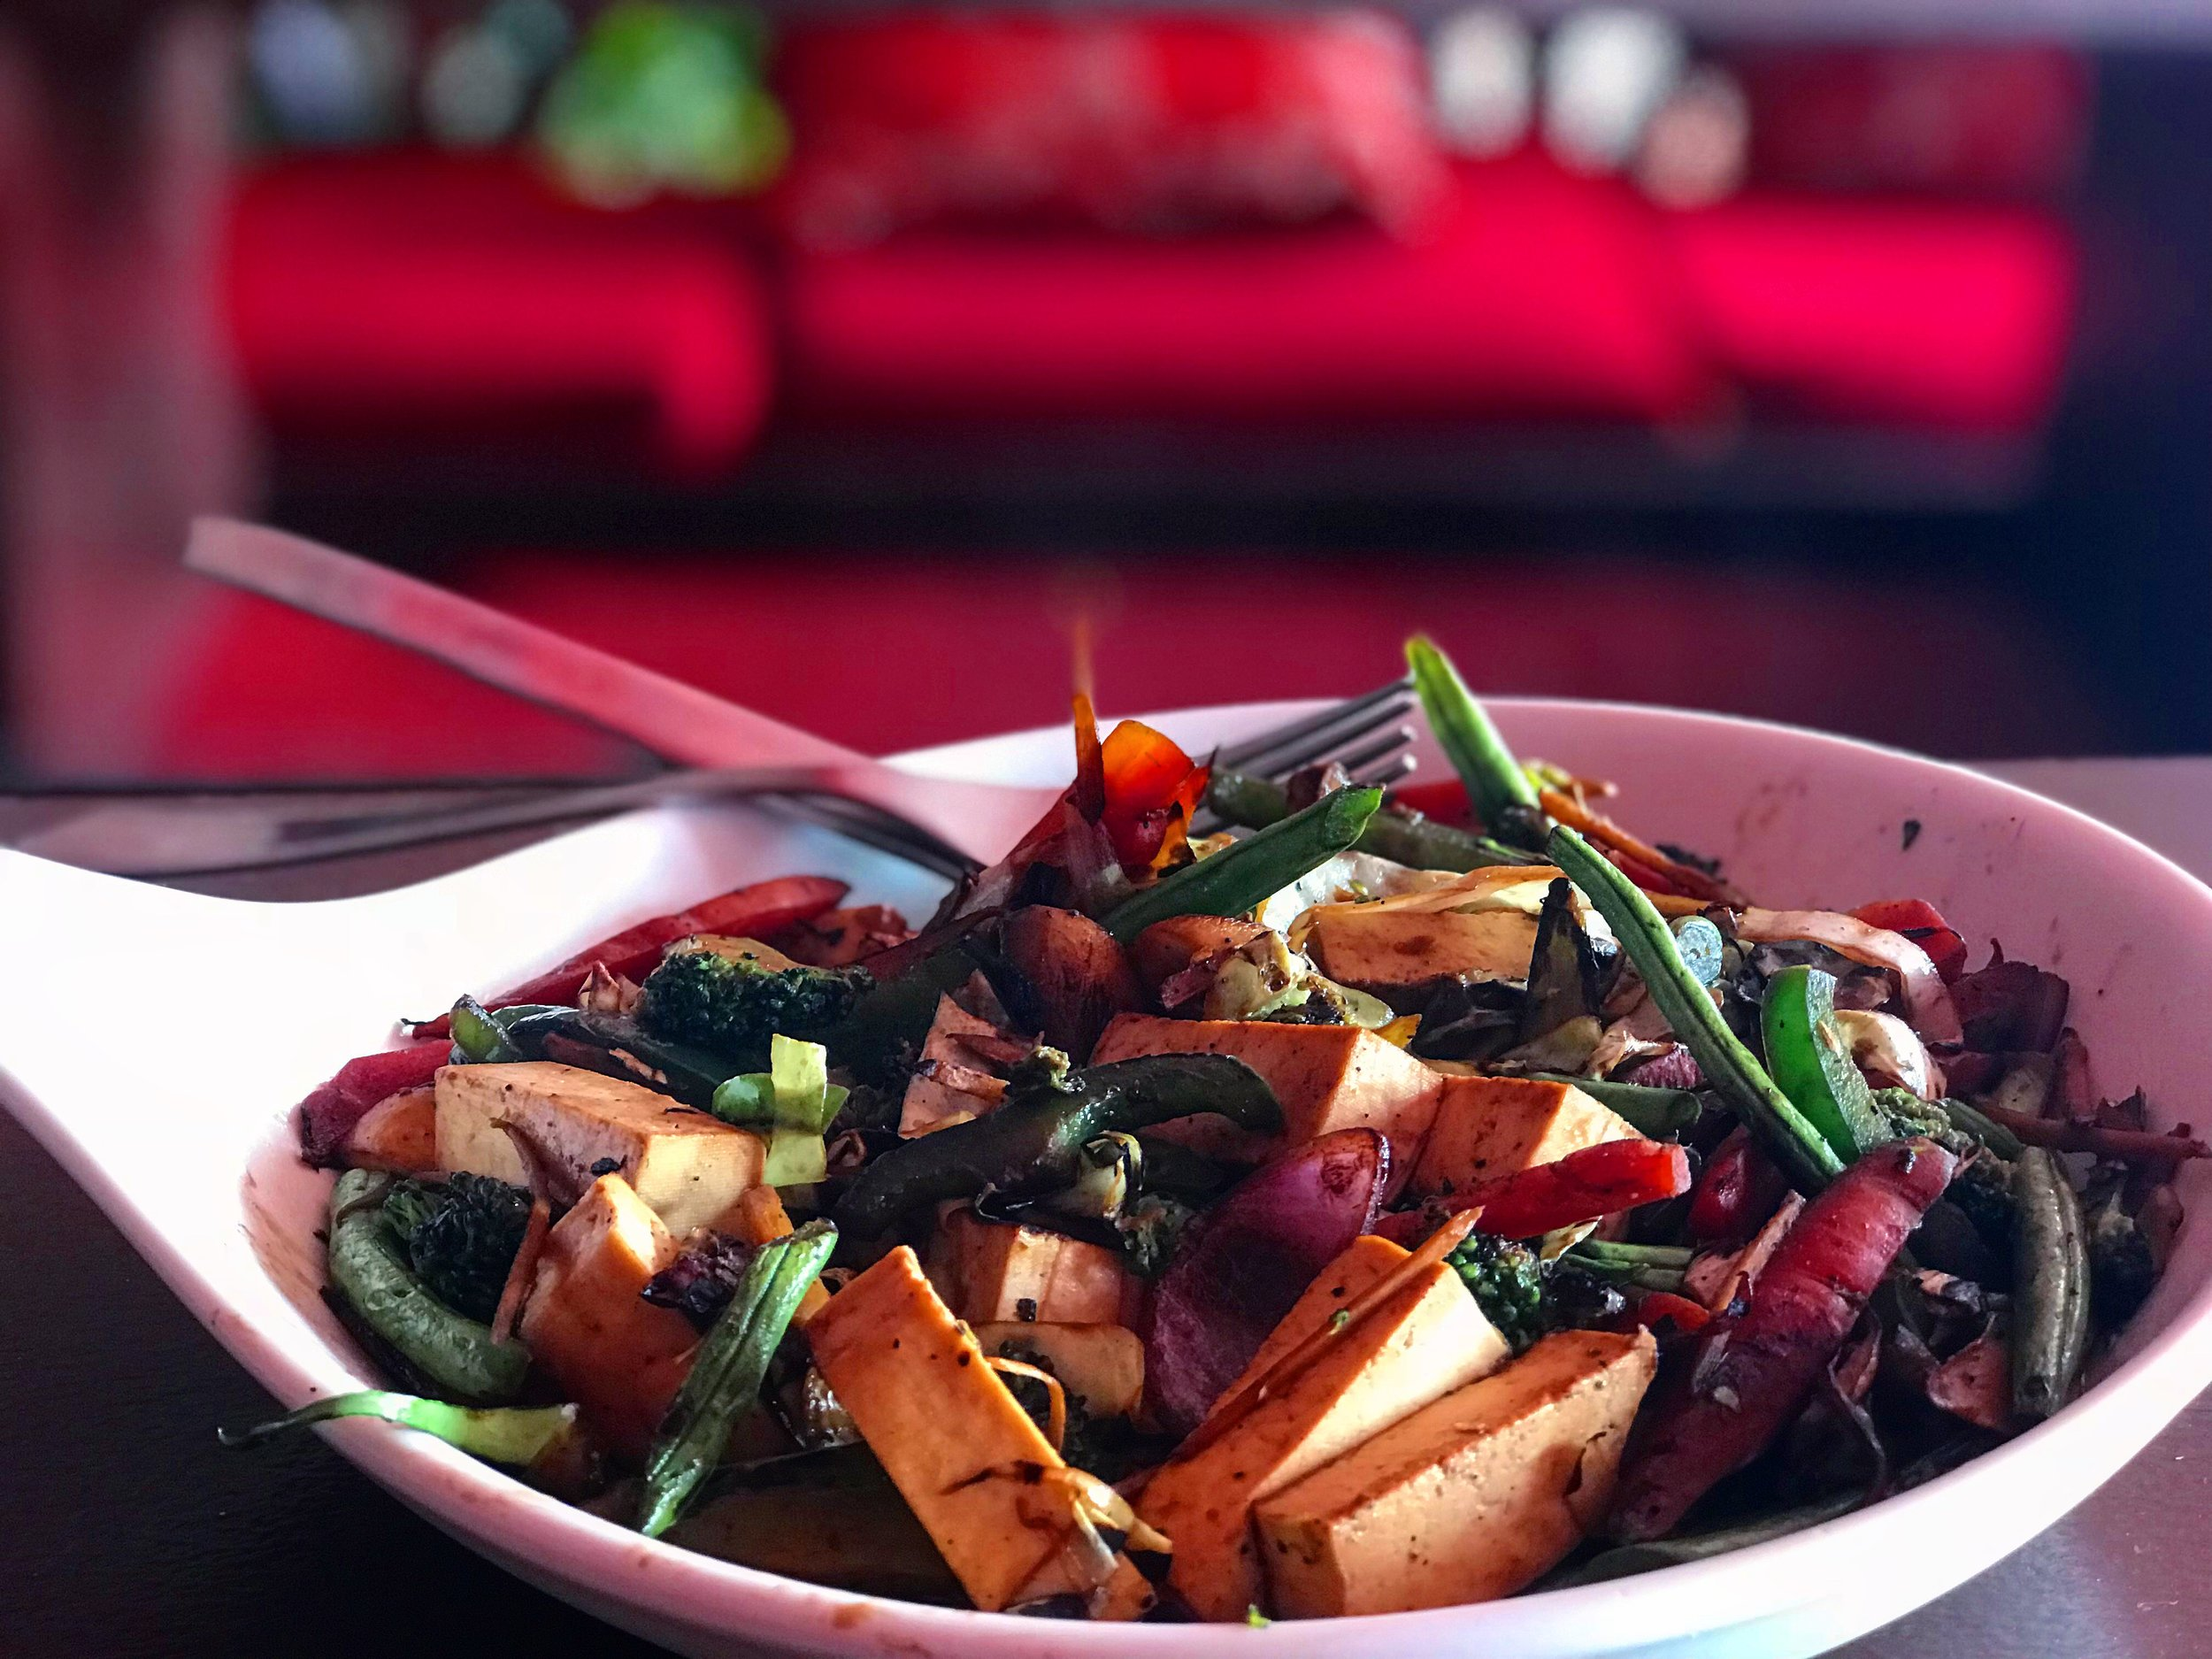 Stir fried veggie ginger tofus. (Sometimes a second lunch was required).